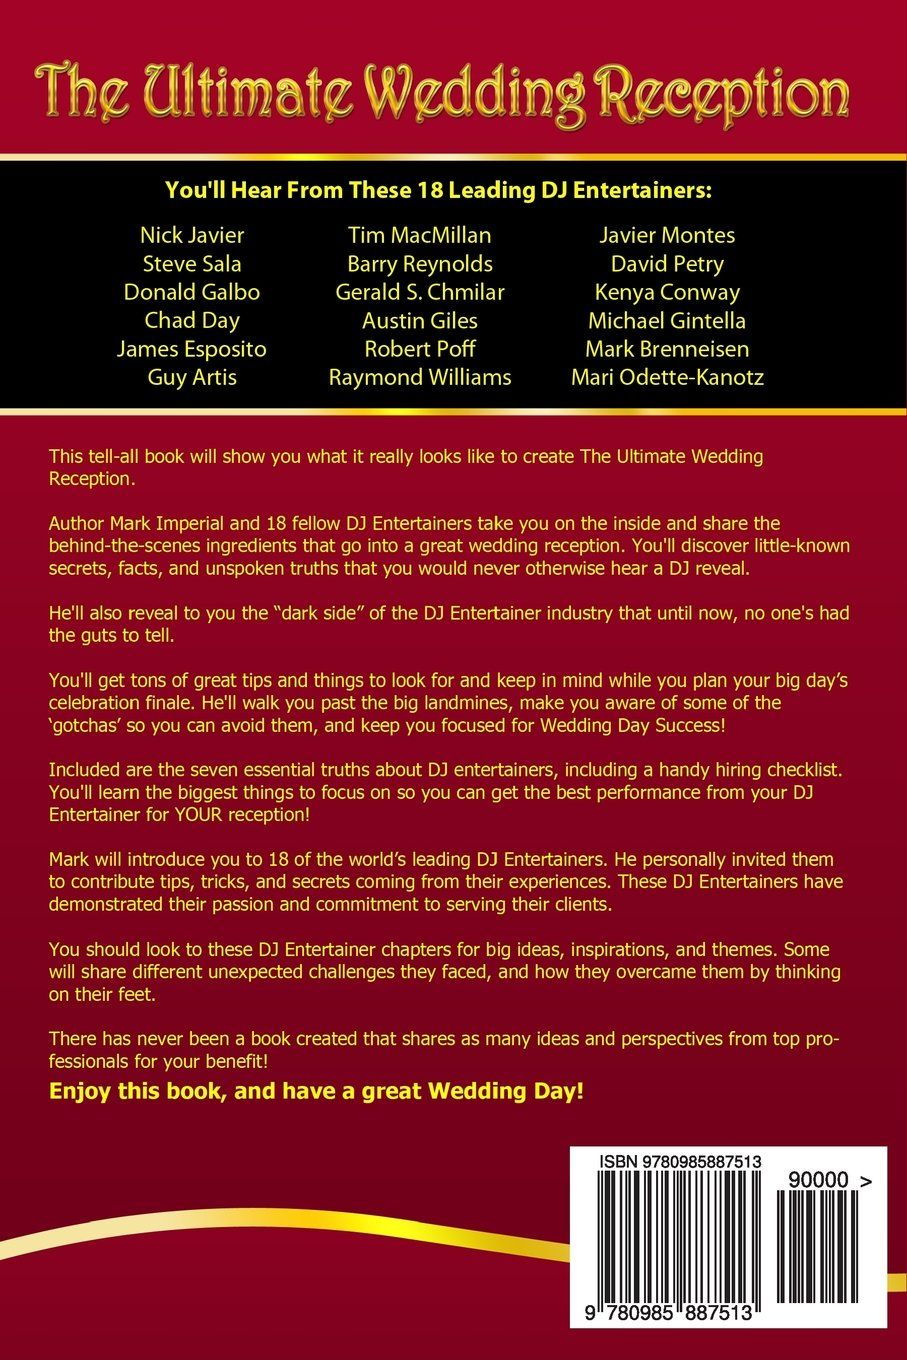 the ultimate wedding reception back cover